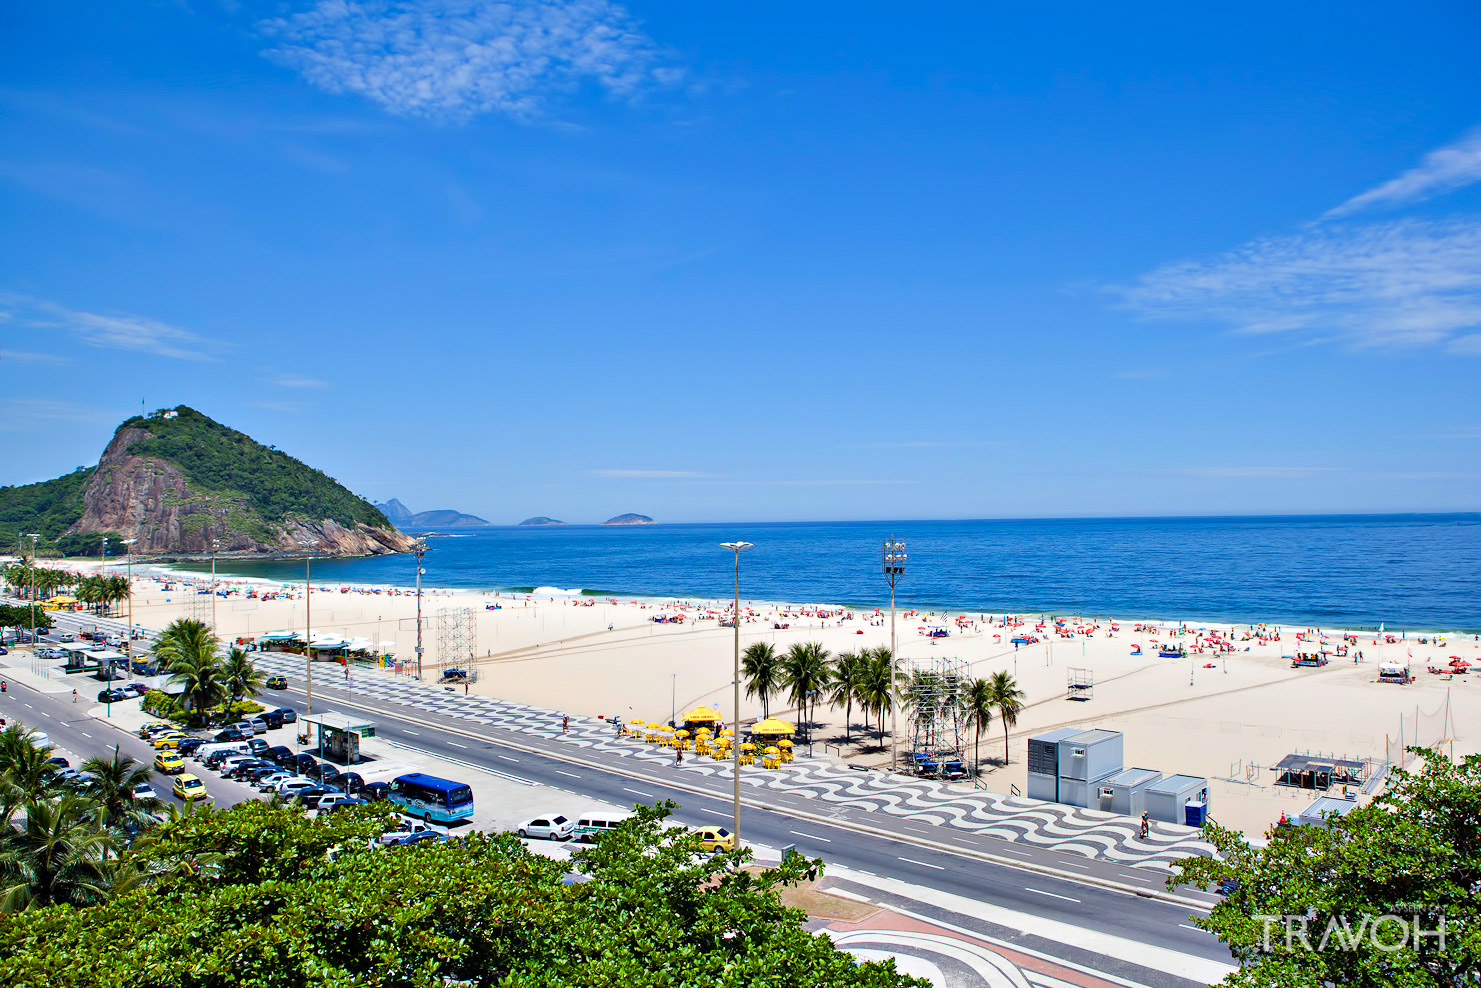 Leme Beach - Exploring 10 of the Top Beaches in Rio de Janeiro, Brazil